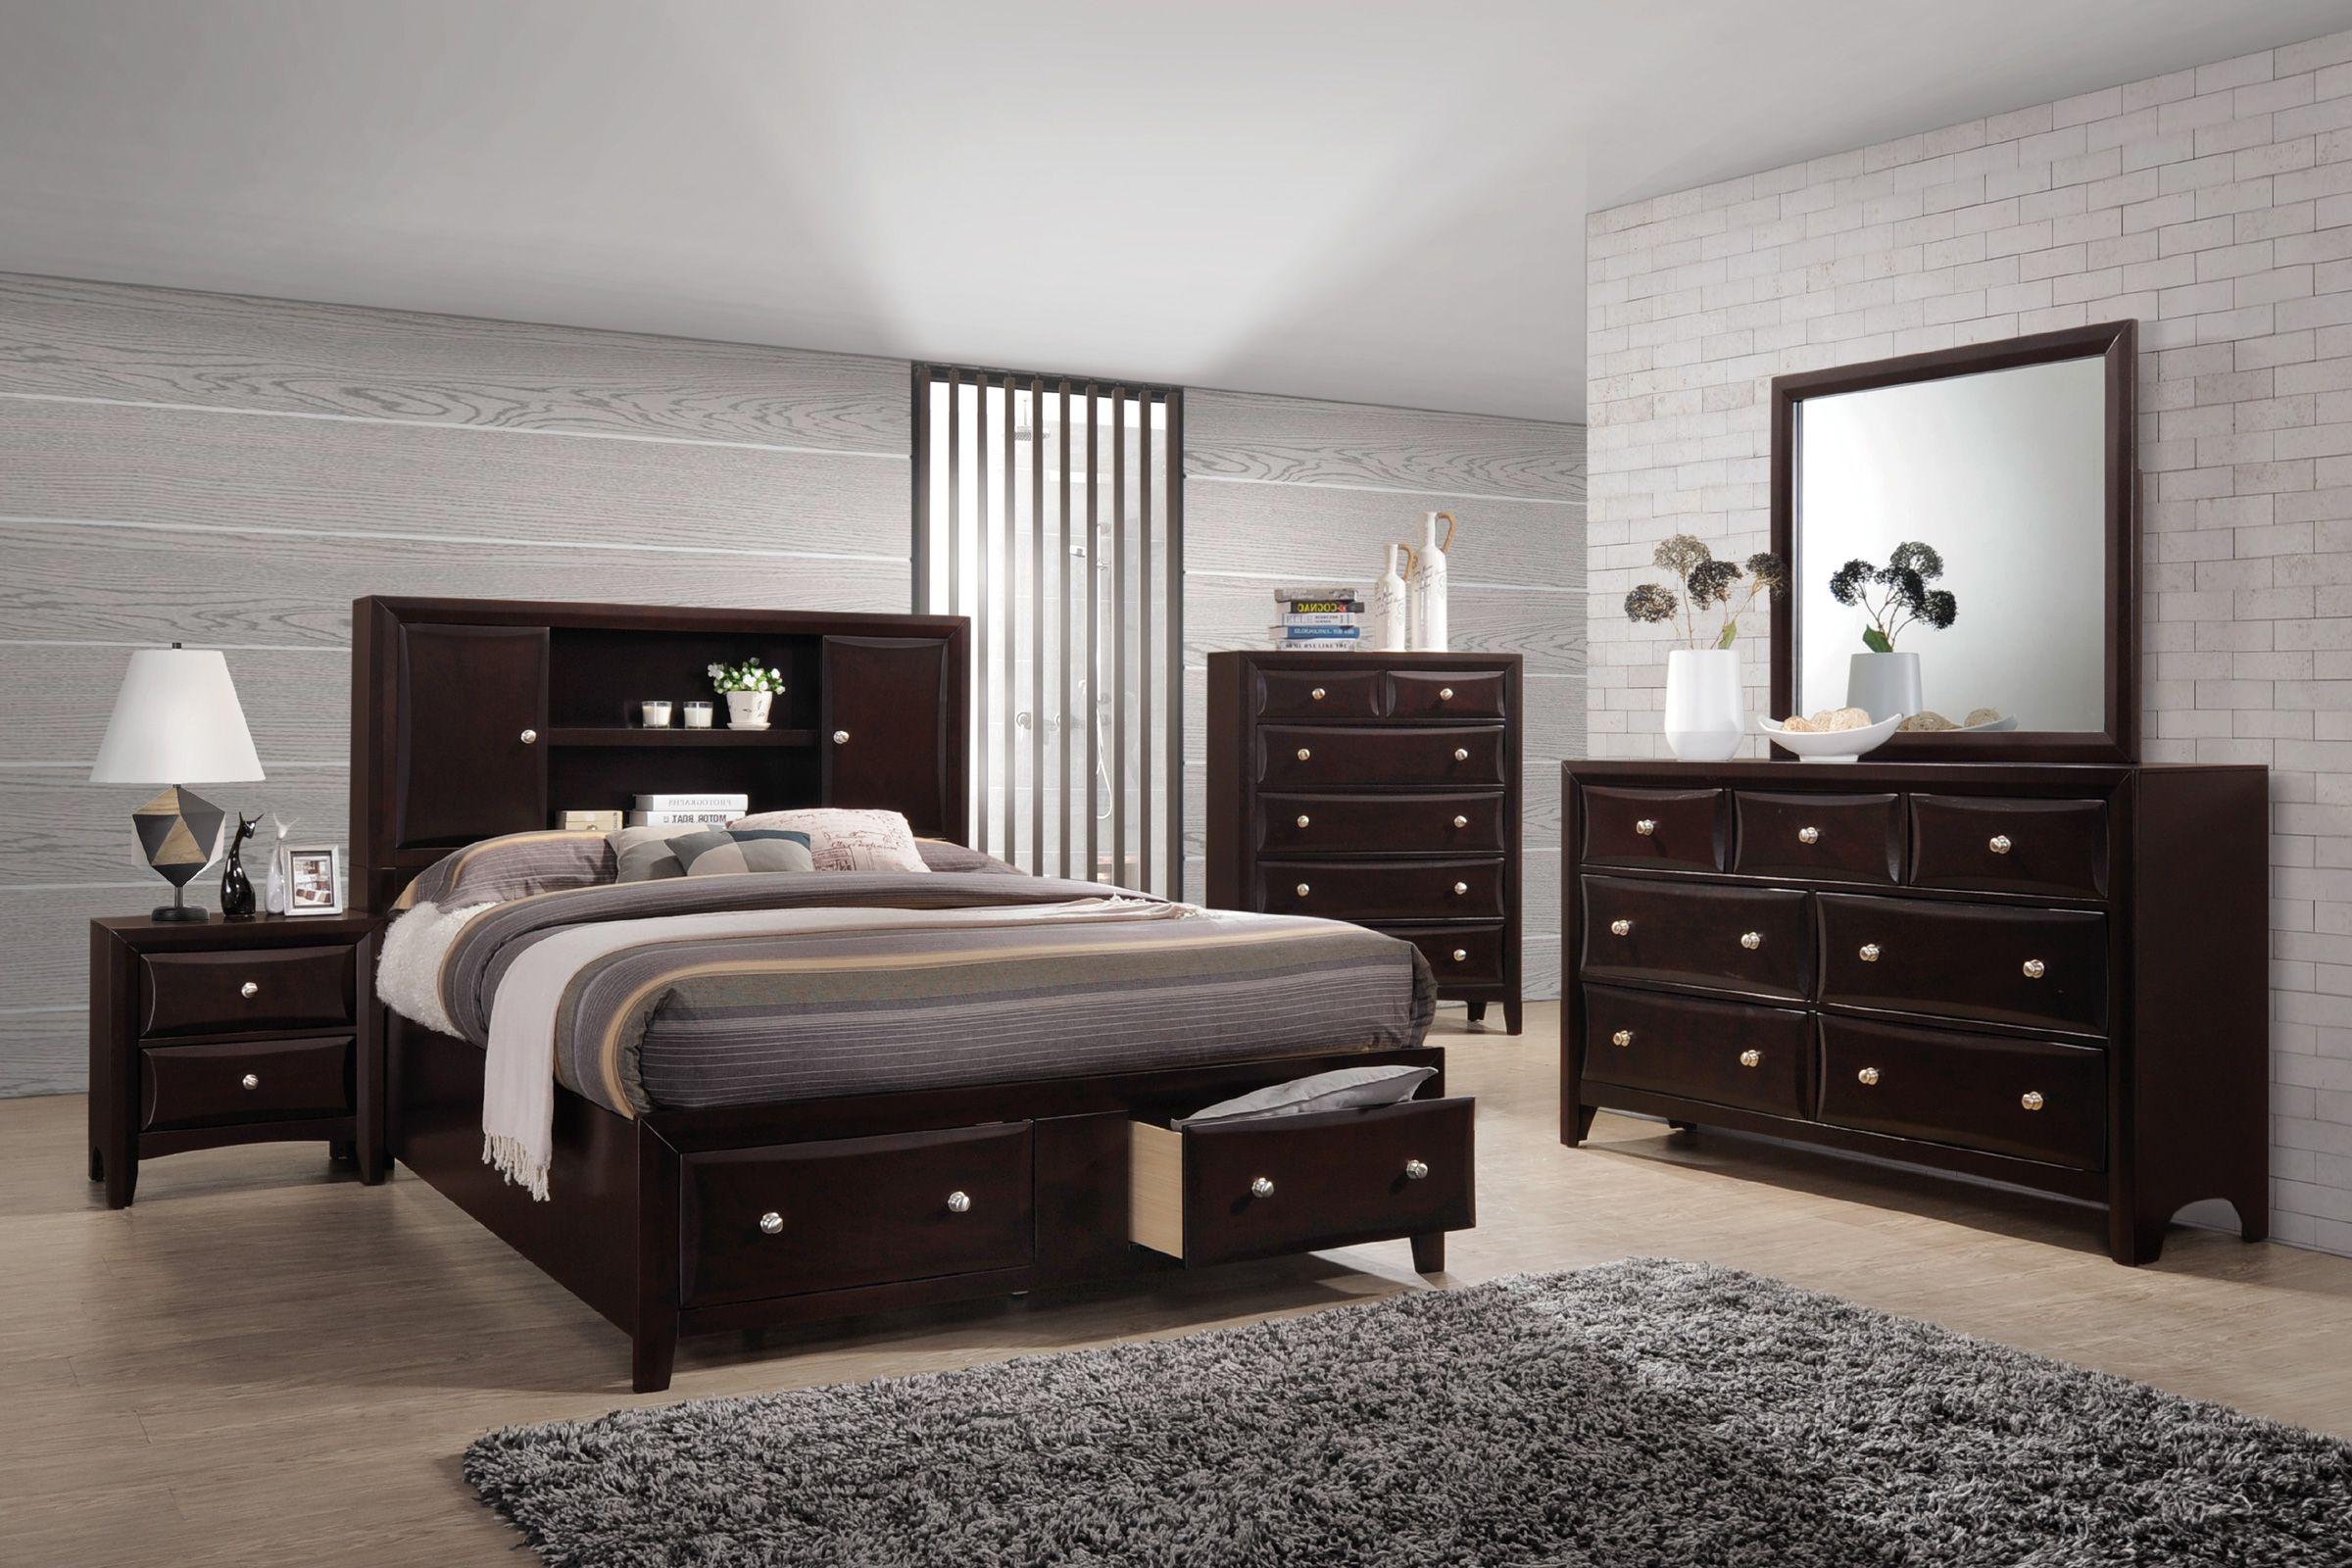 Solitude 5 Piece Queen Bedroom Set With 32 Led Tv Save 770 Now 1 399 99 We Pay Your Tax